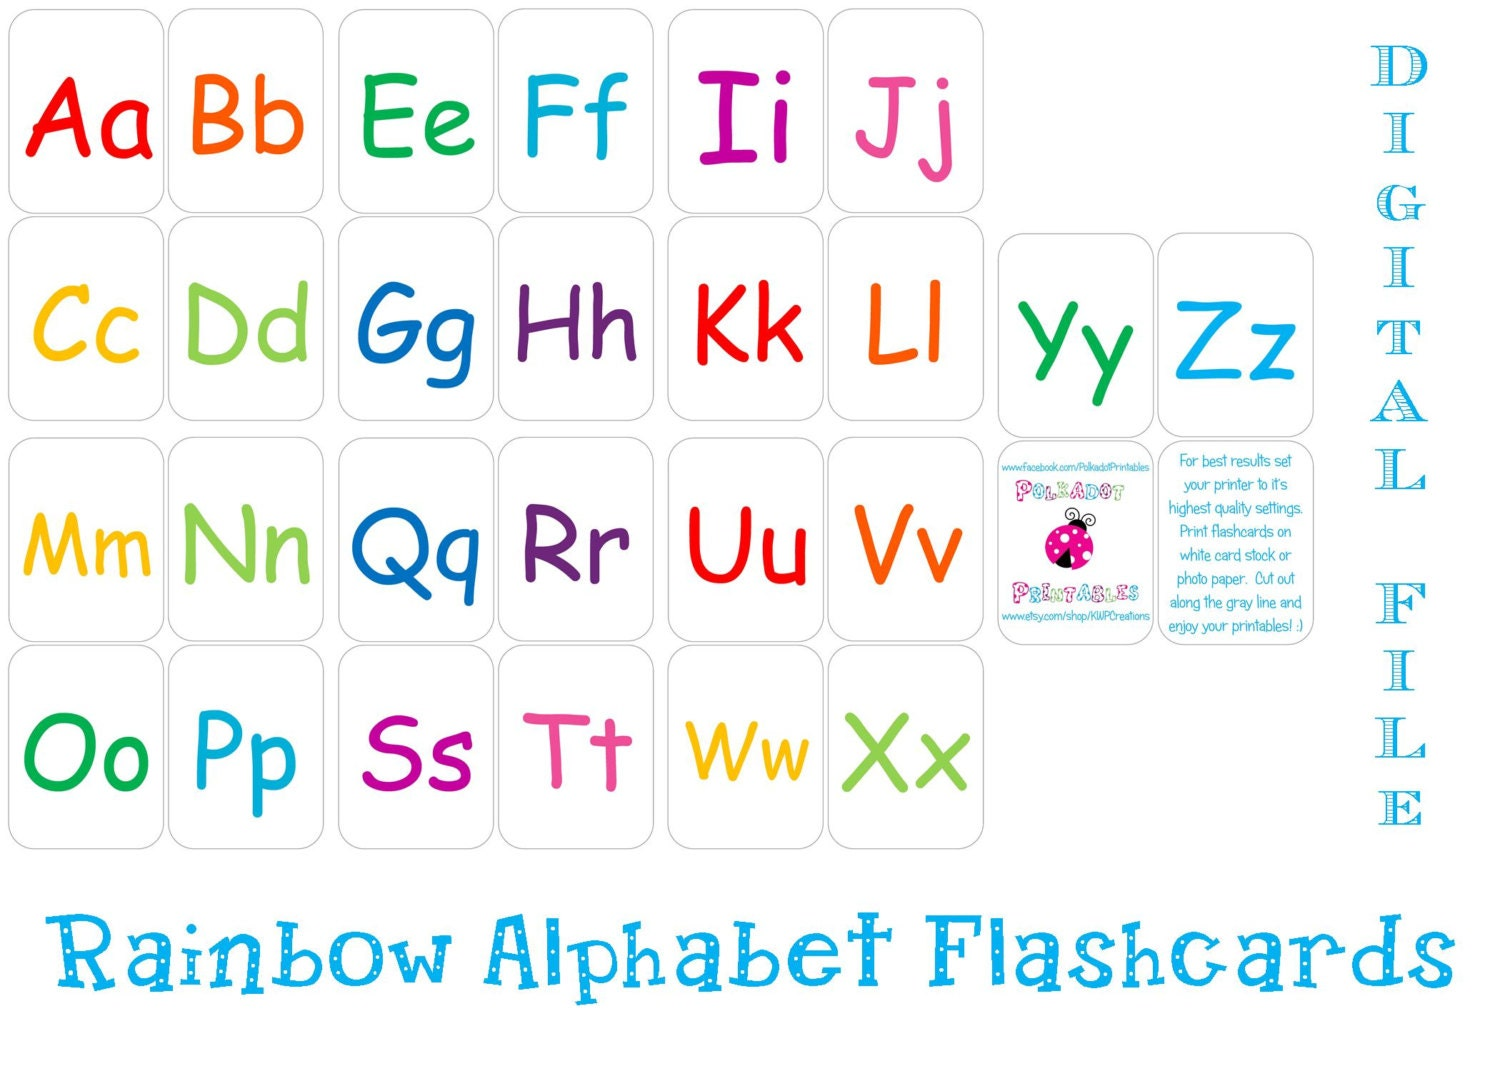 Dynamic image with free printable alphabet flash cards